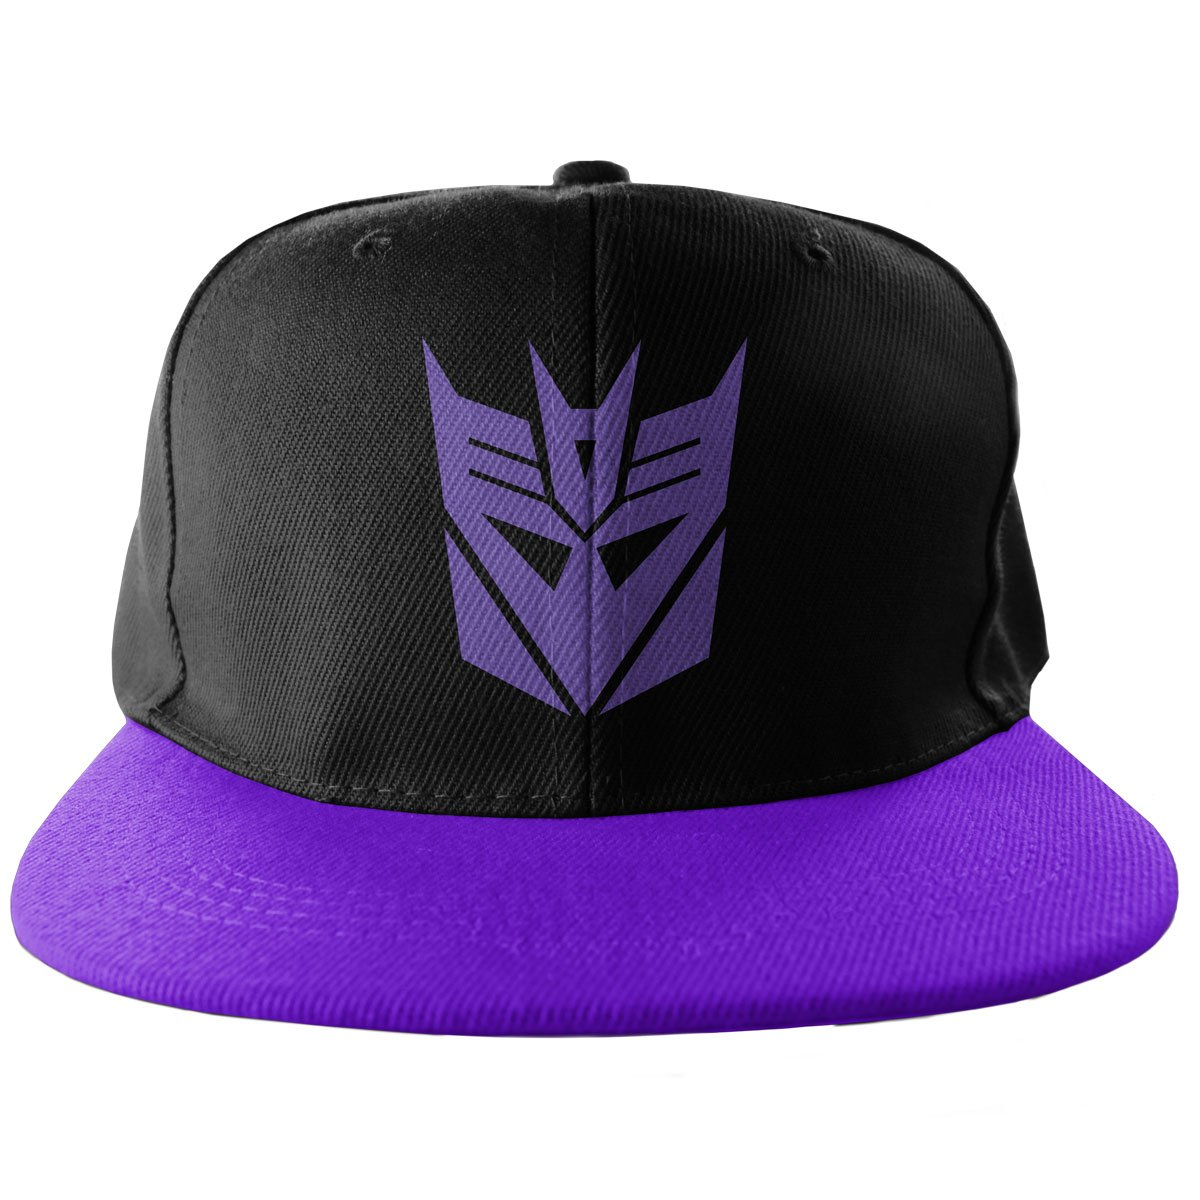 Decepticon Embroidered Adjustable Size Official Snapback Cap (BLACK/PURPLE)